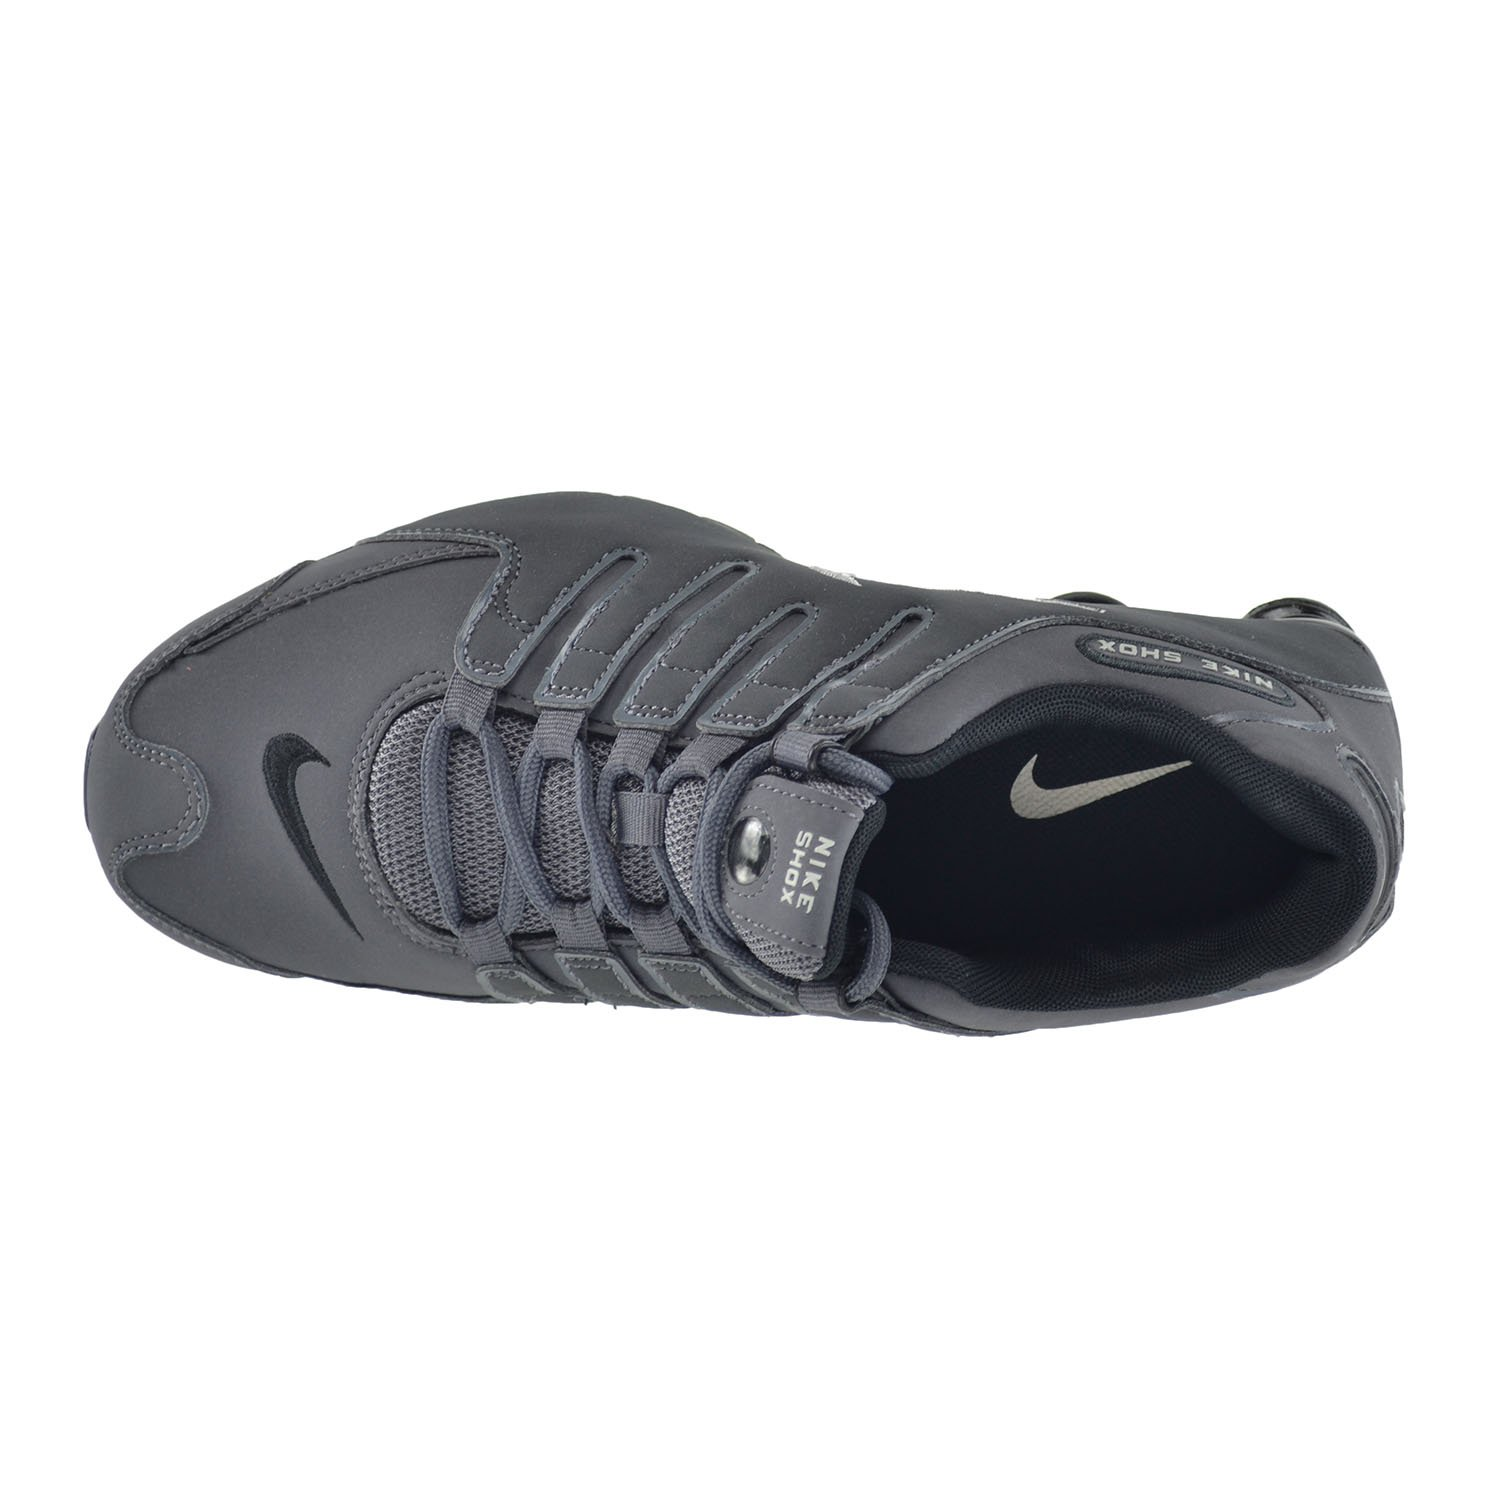 nike roshe nm flyknit se men's shoe nz